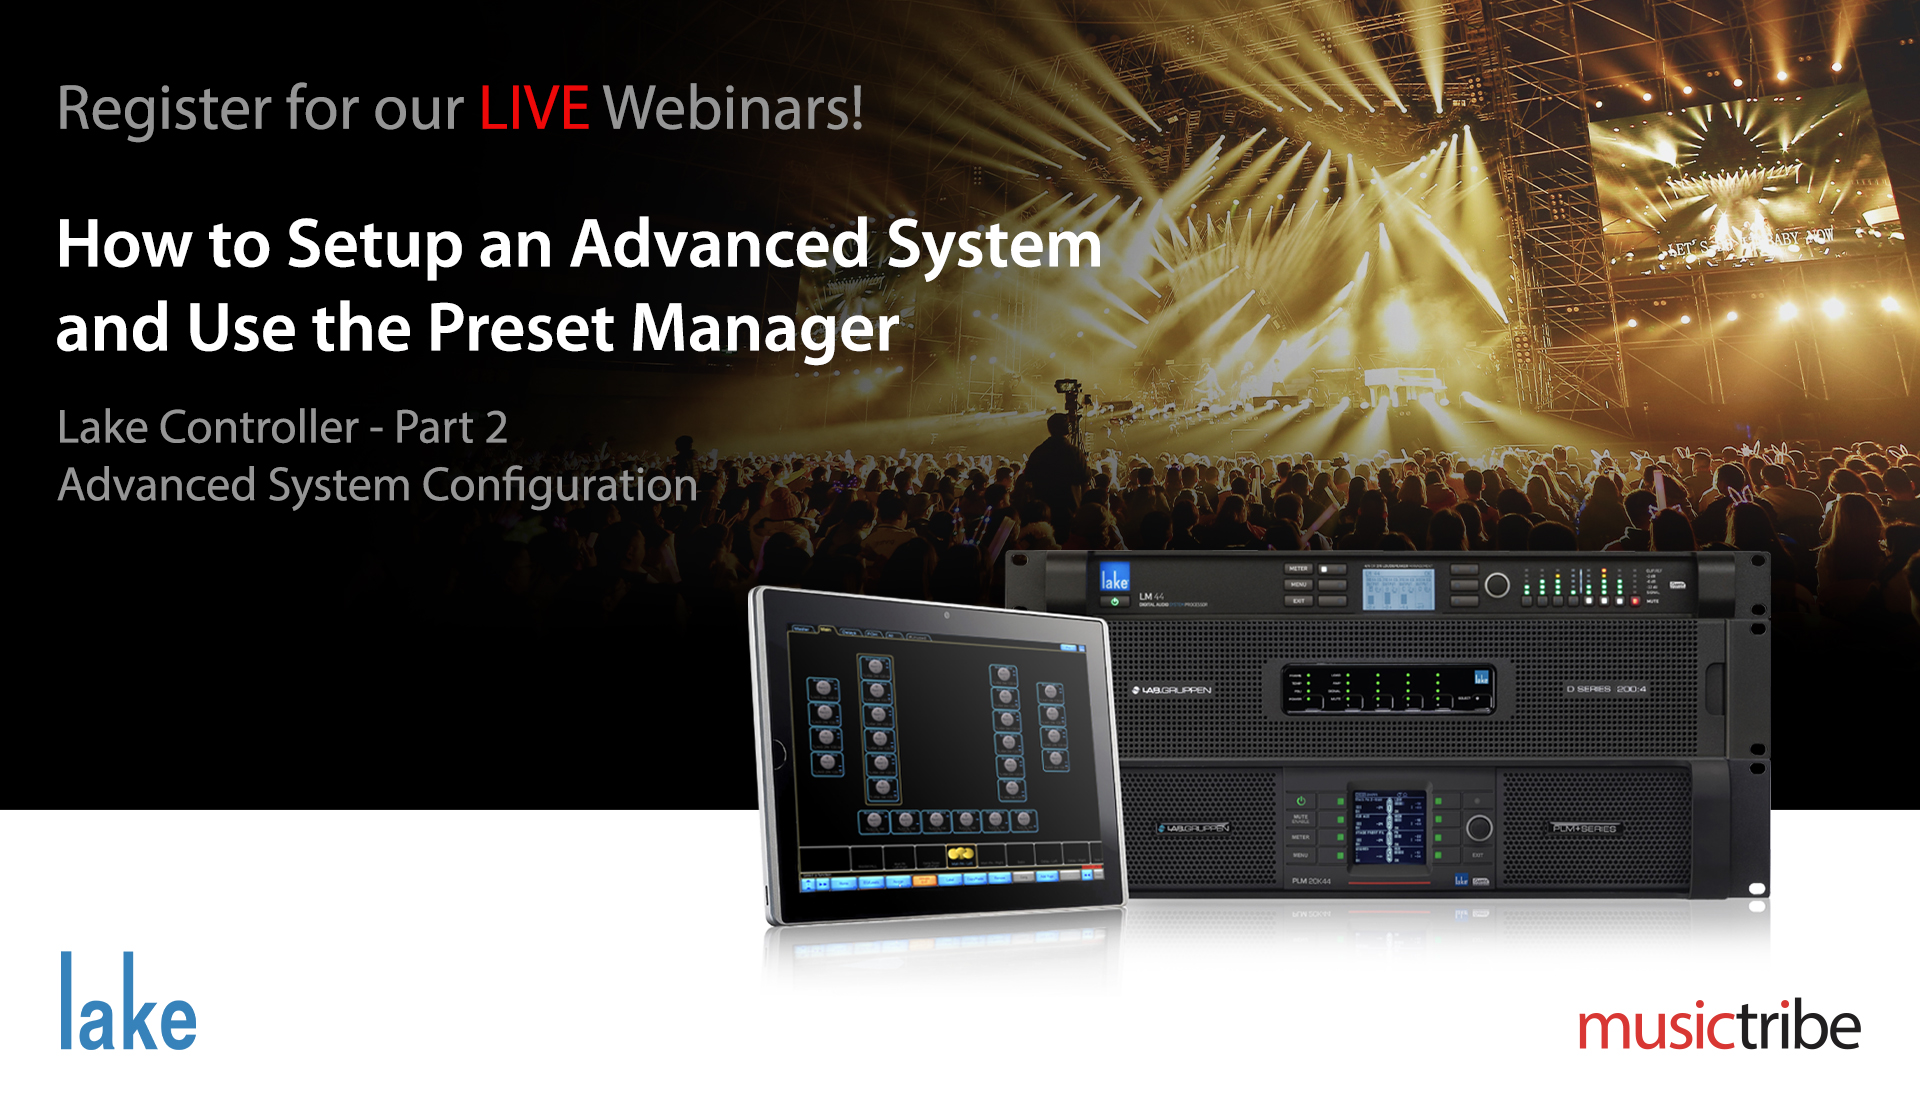 Lake LIVE Webinar: How to Setup an Advanced System and Use the Preset Manager (Part 2)